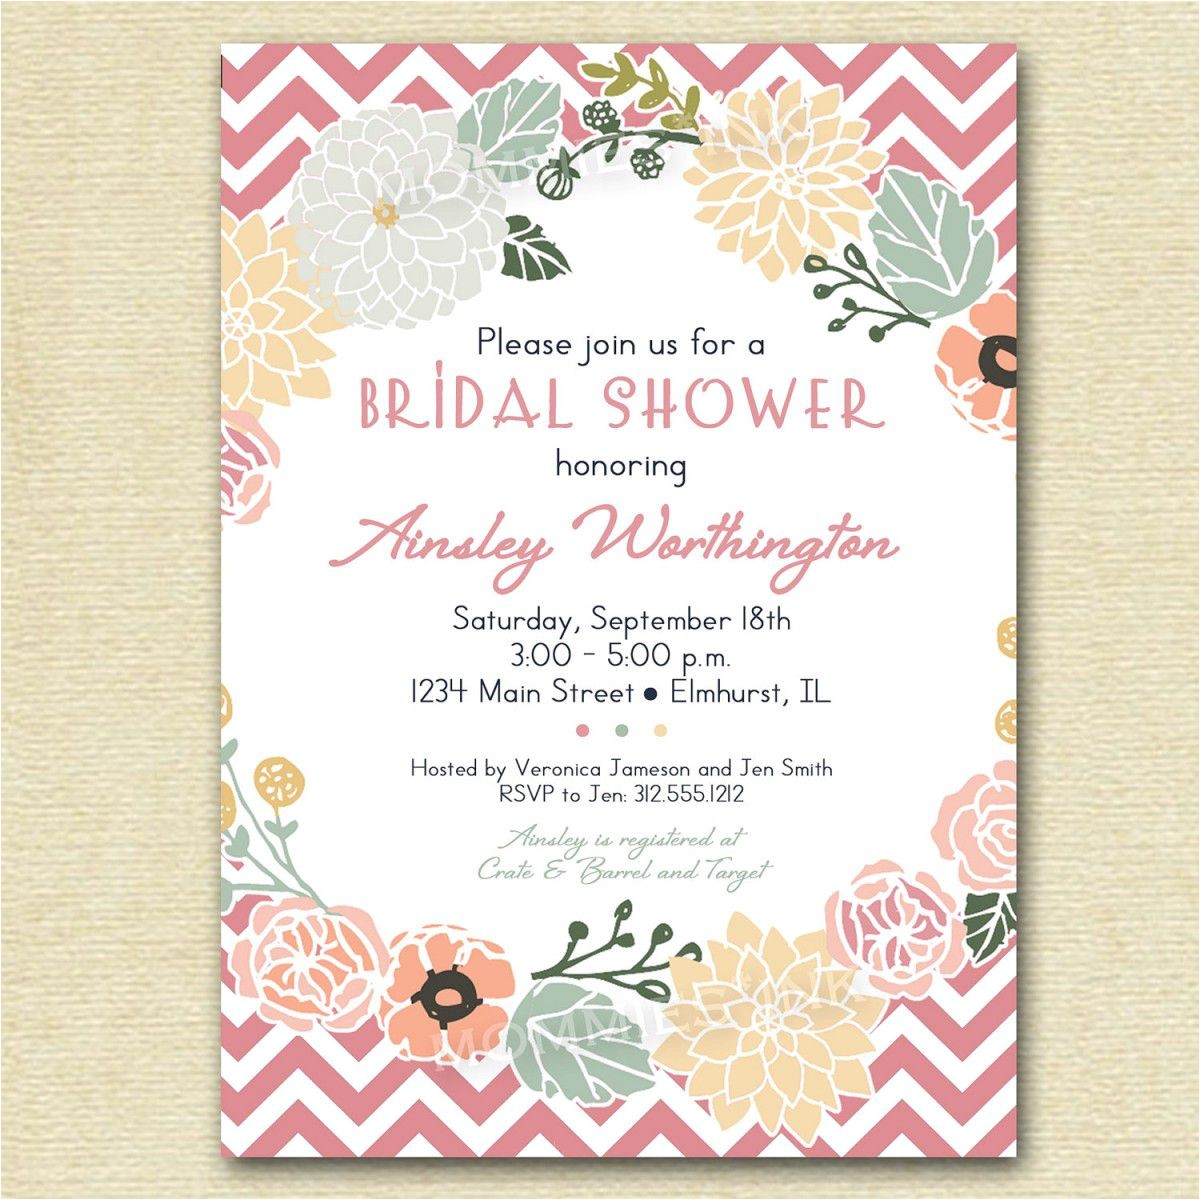 Cheap Wedding Invitations Walmart Cheap Wedding Shower Invitations Cheap Bridal Shower